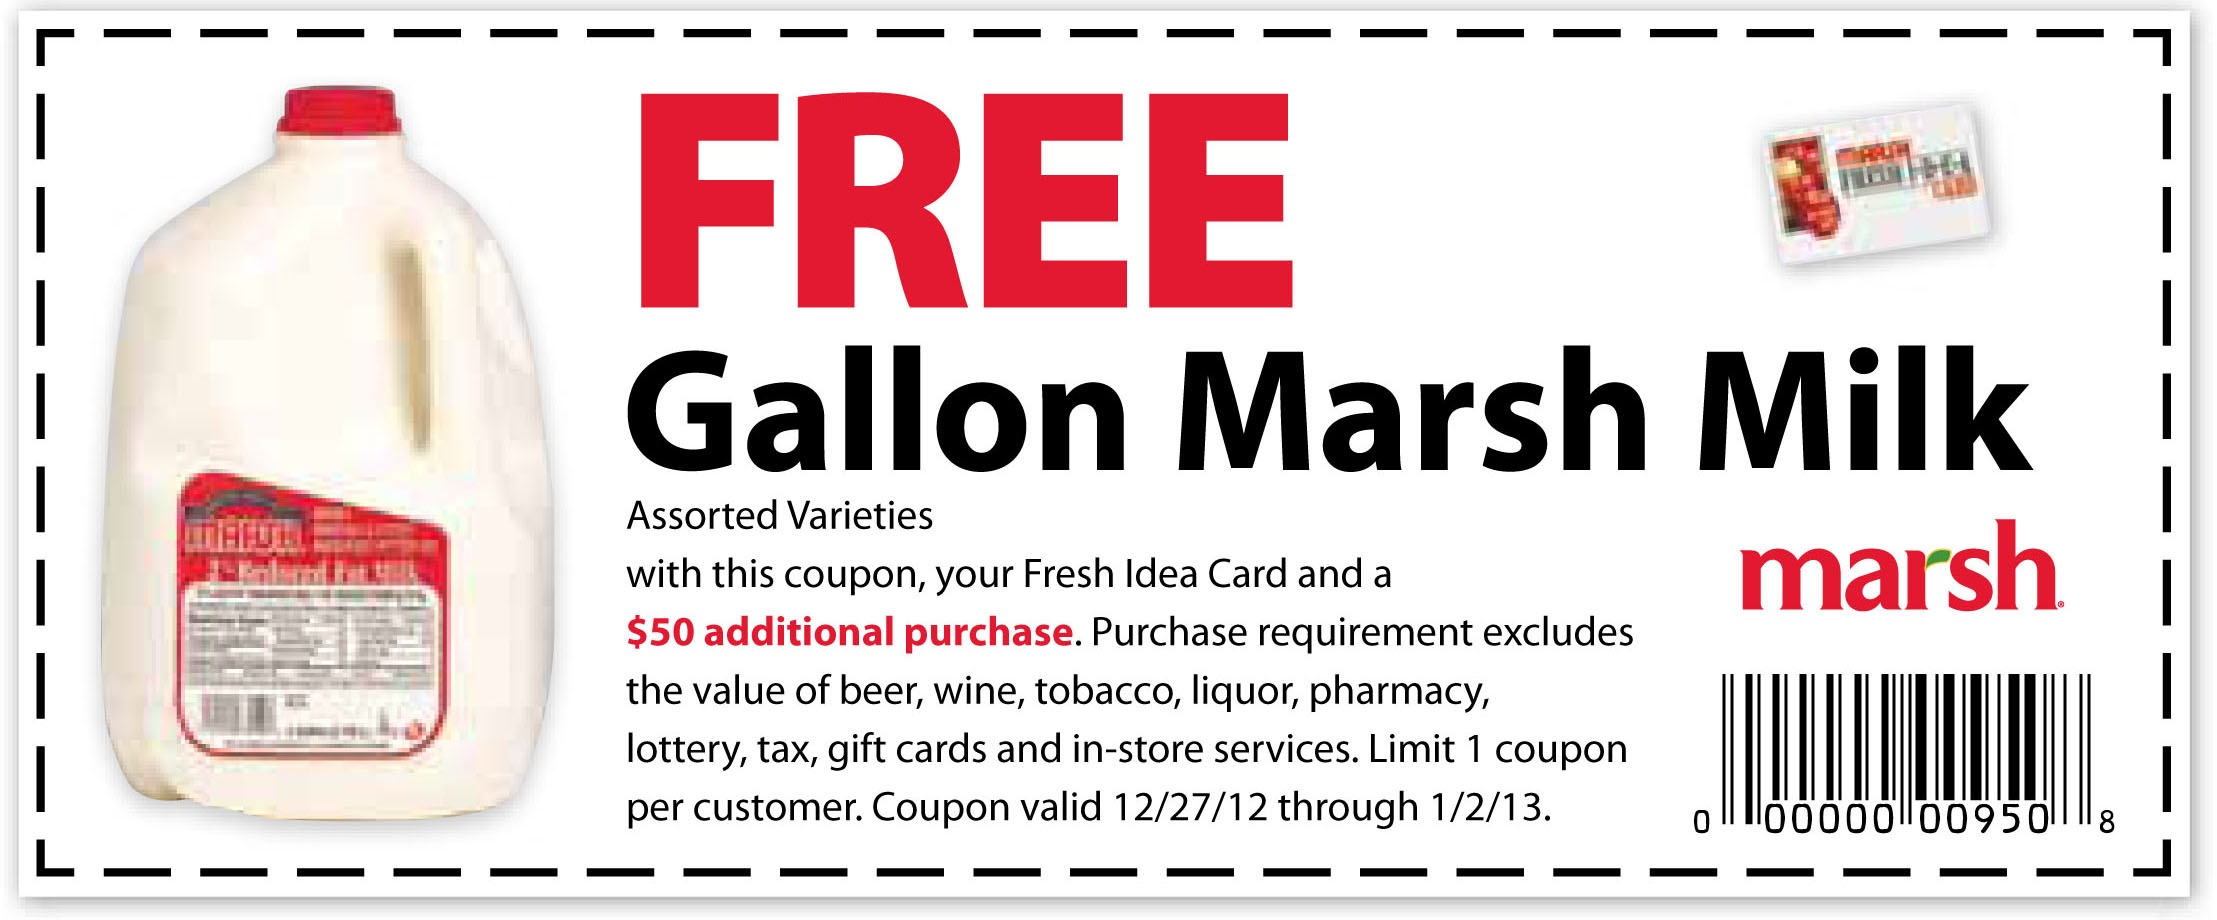 Stopnshop-Free-Silkmilk-Coupon-Valid-Ongoing-2018 - Free Printable Beer Coupons